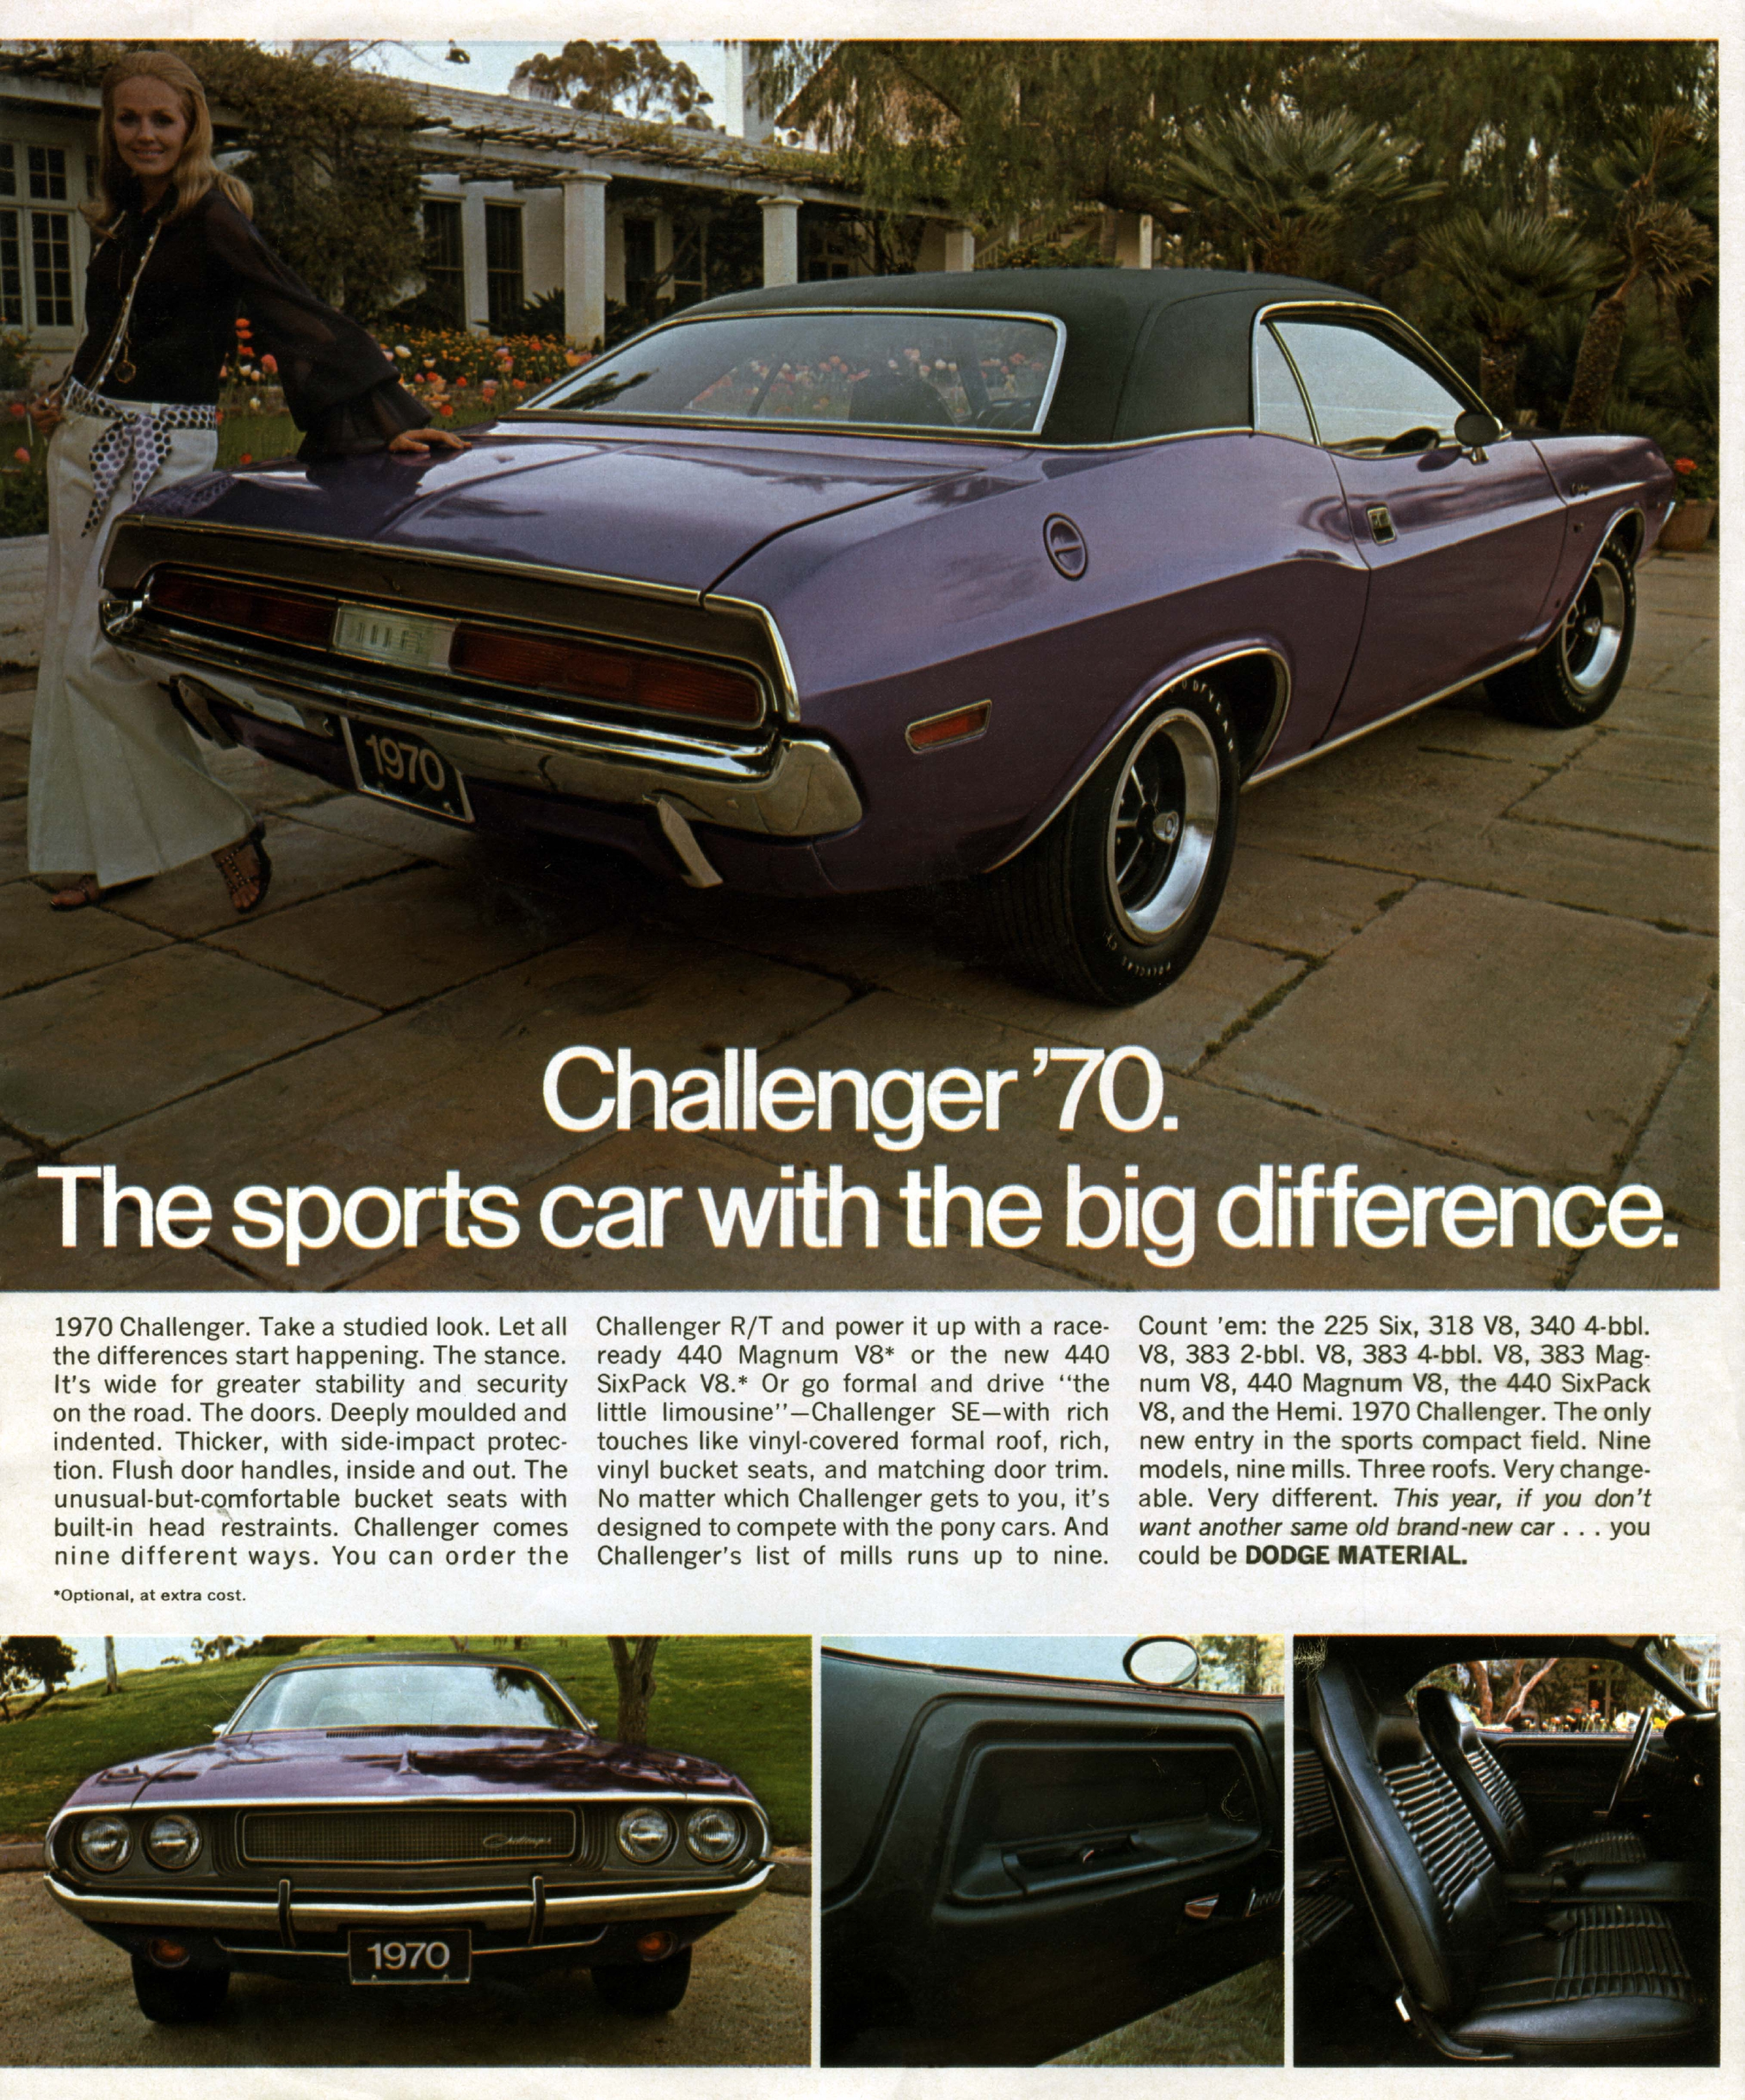 Dodge challenger ad a 70